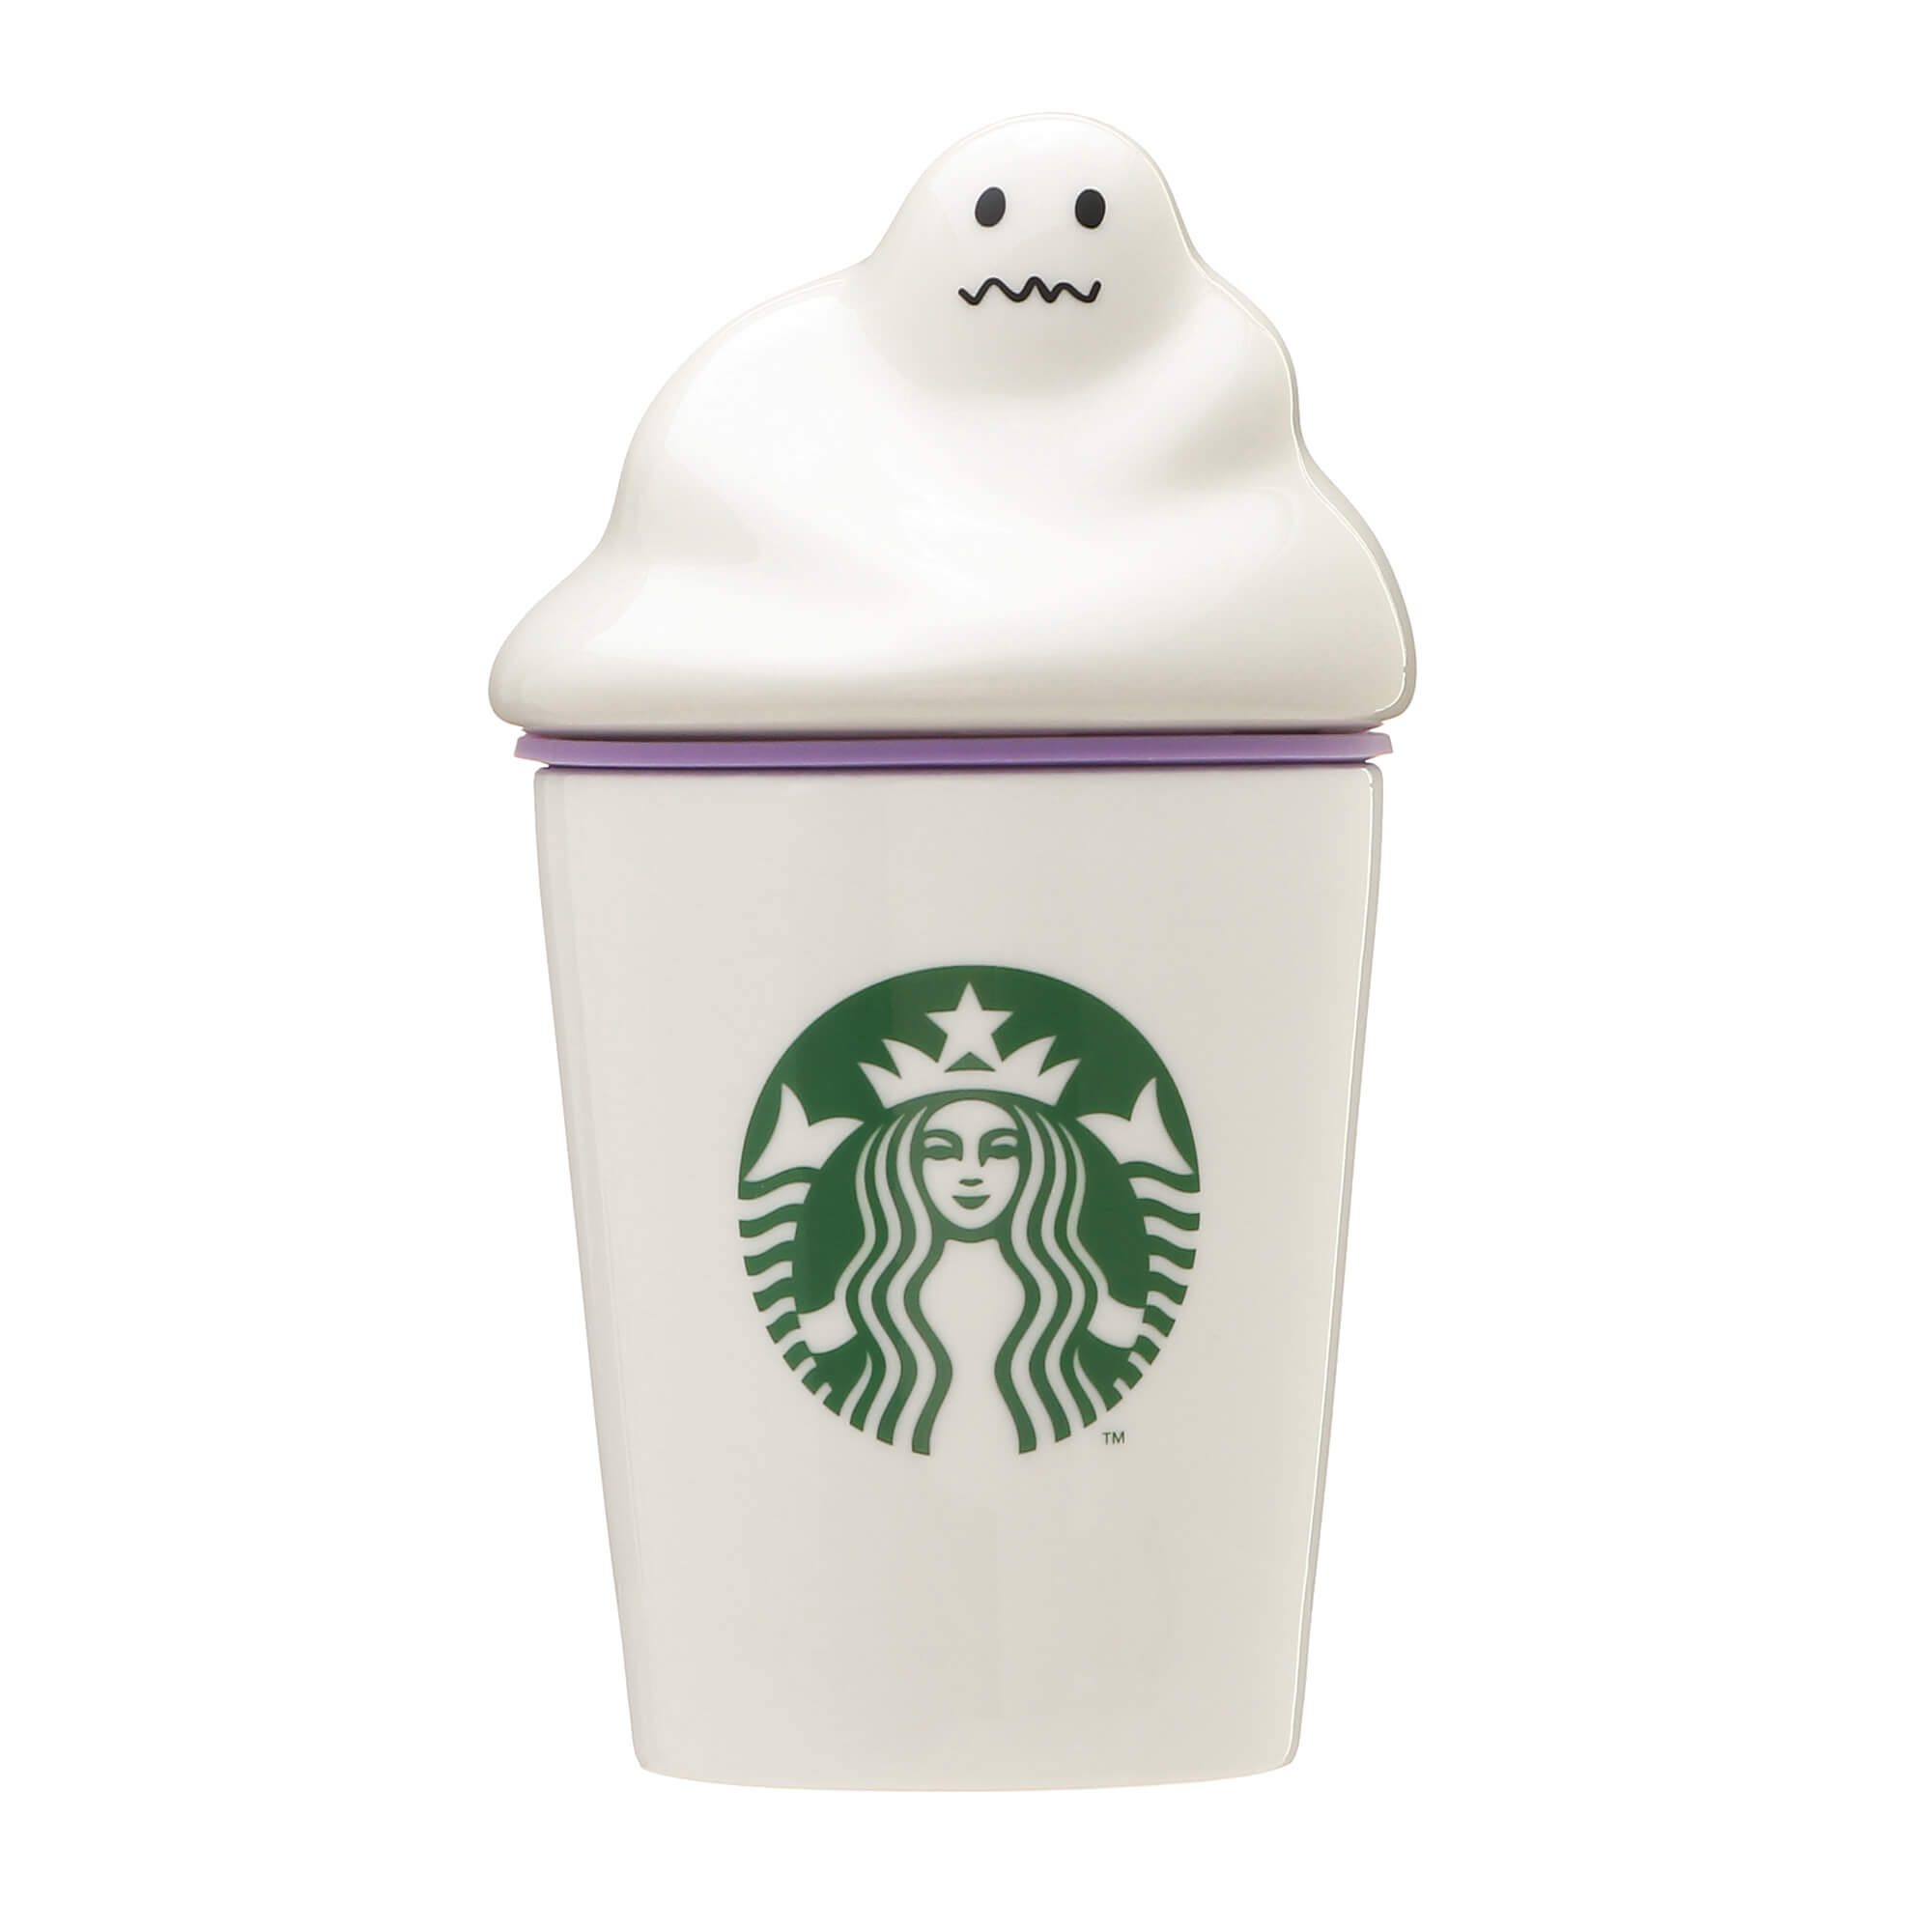 Starbucks Japan Halloween 2020 Ghost Whip Canister